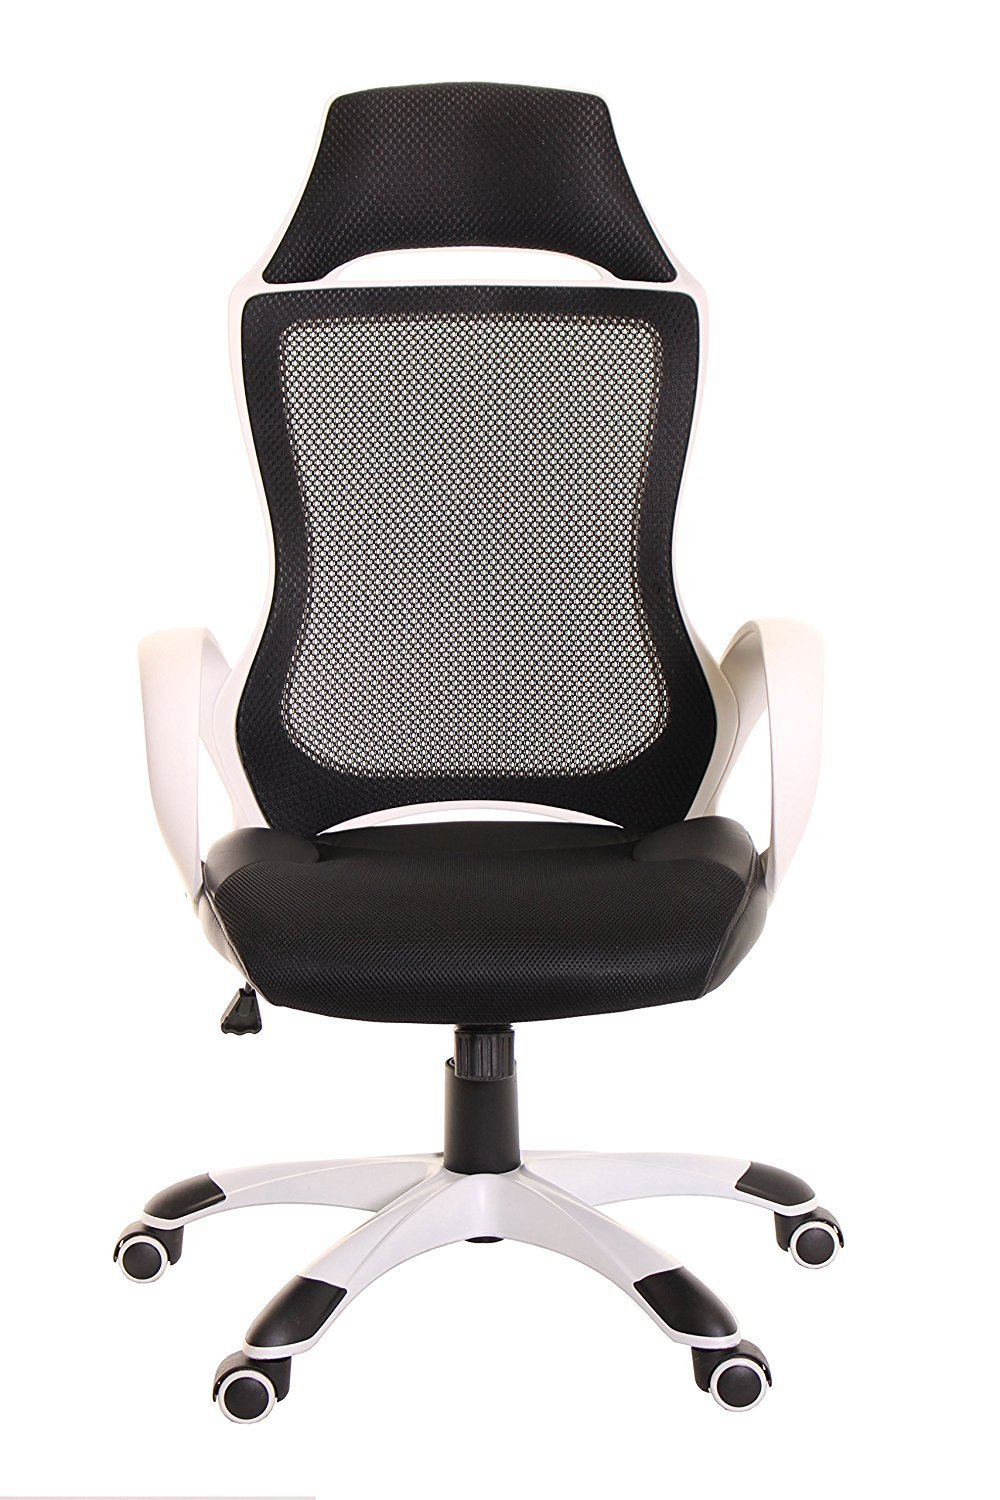 Executive Chairs For Back Pain Home Furniture Design